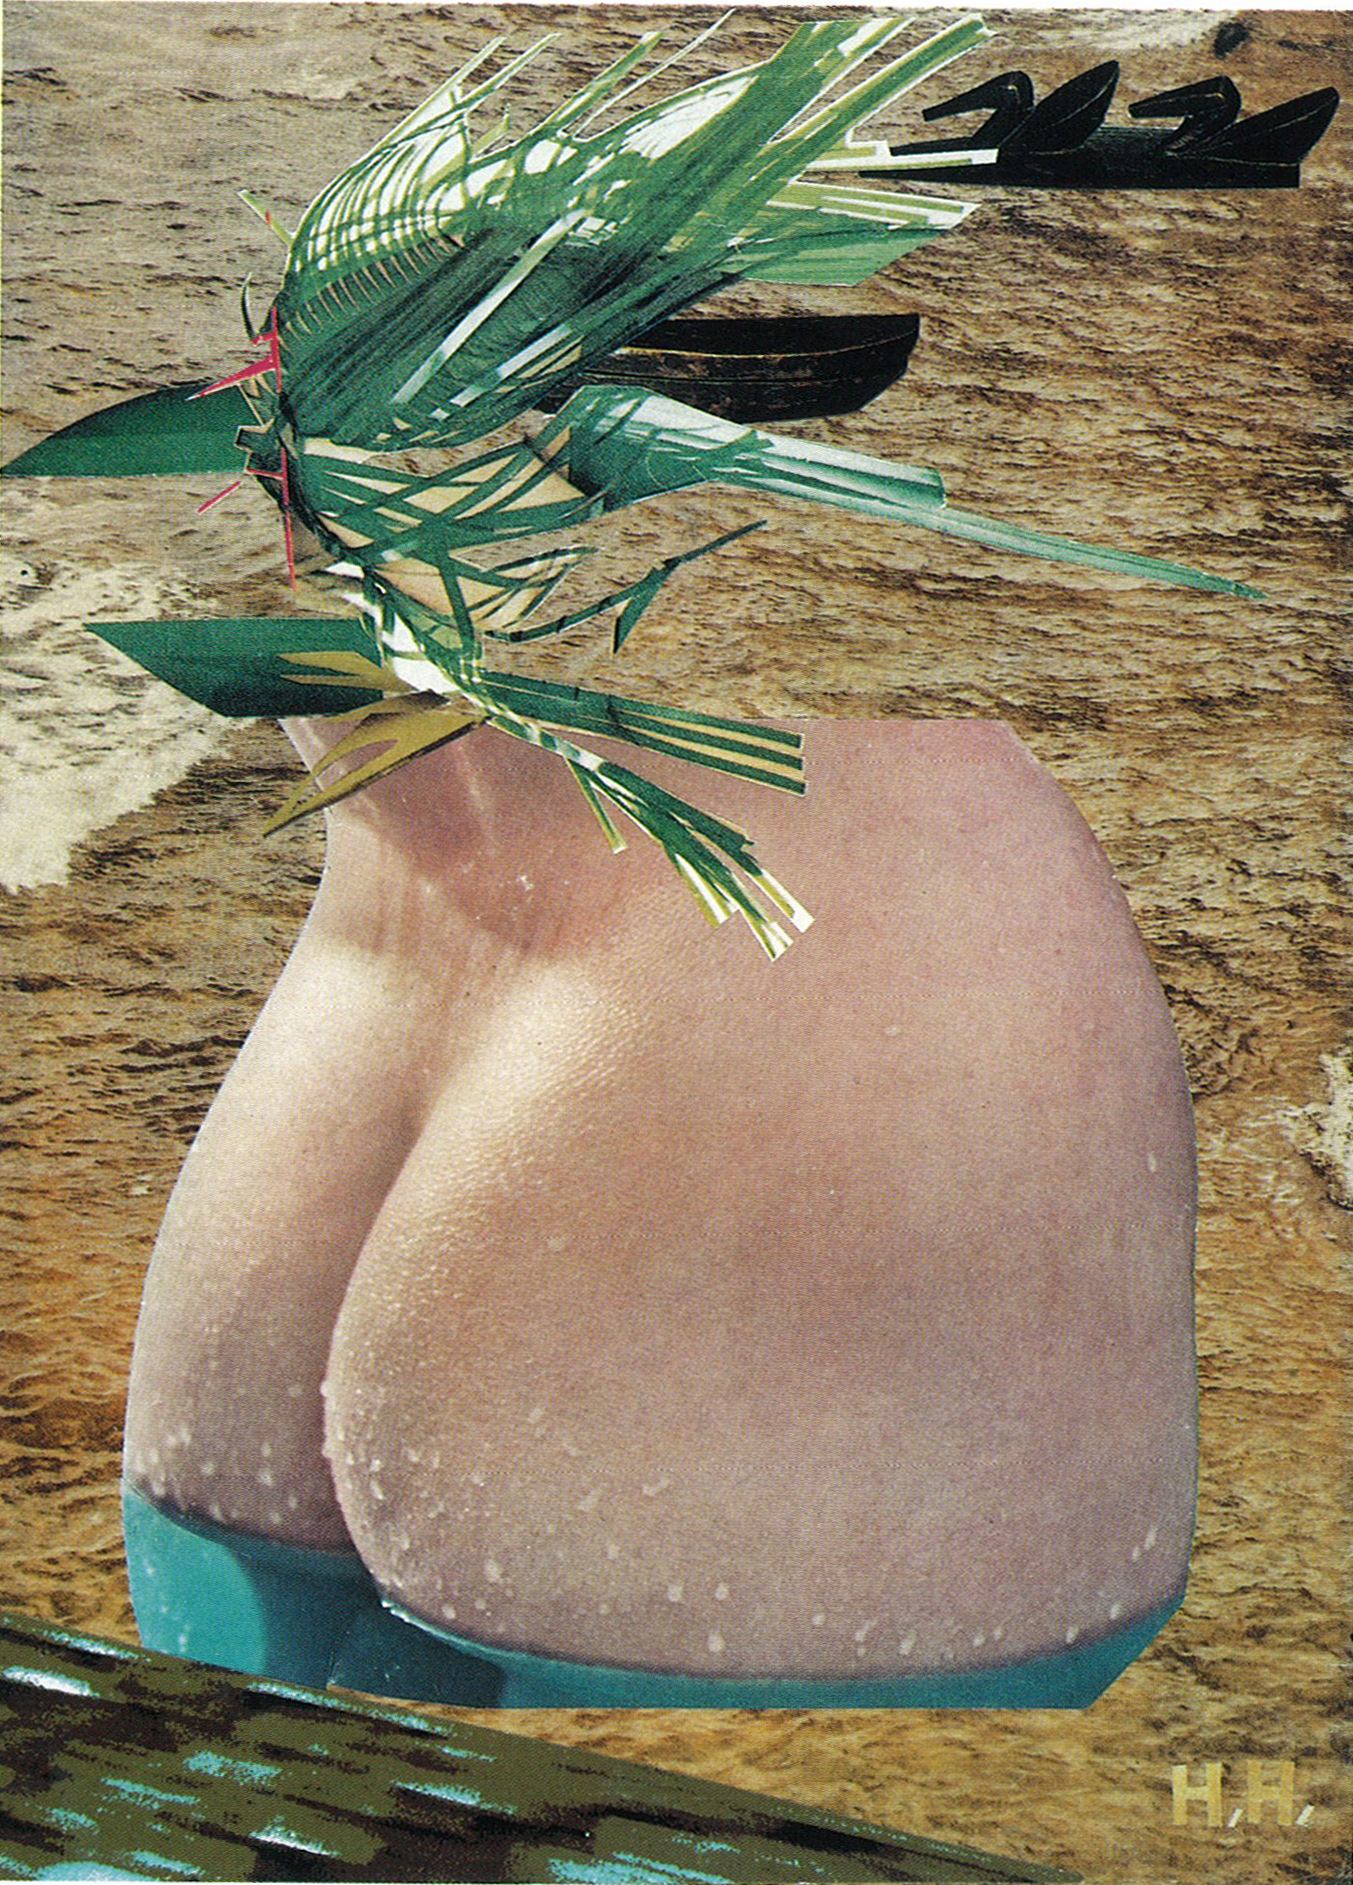 Hannah-Hoch-The-Beautiful-Bottom